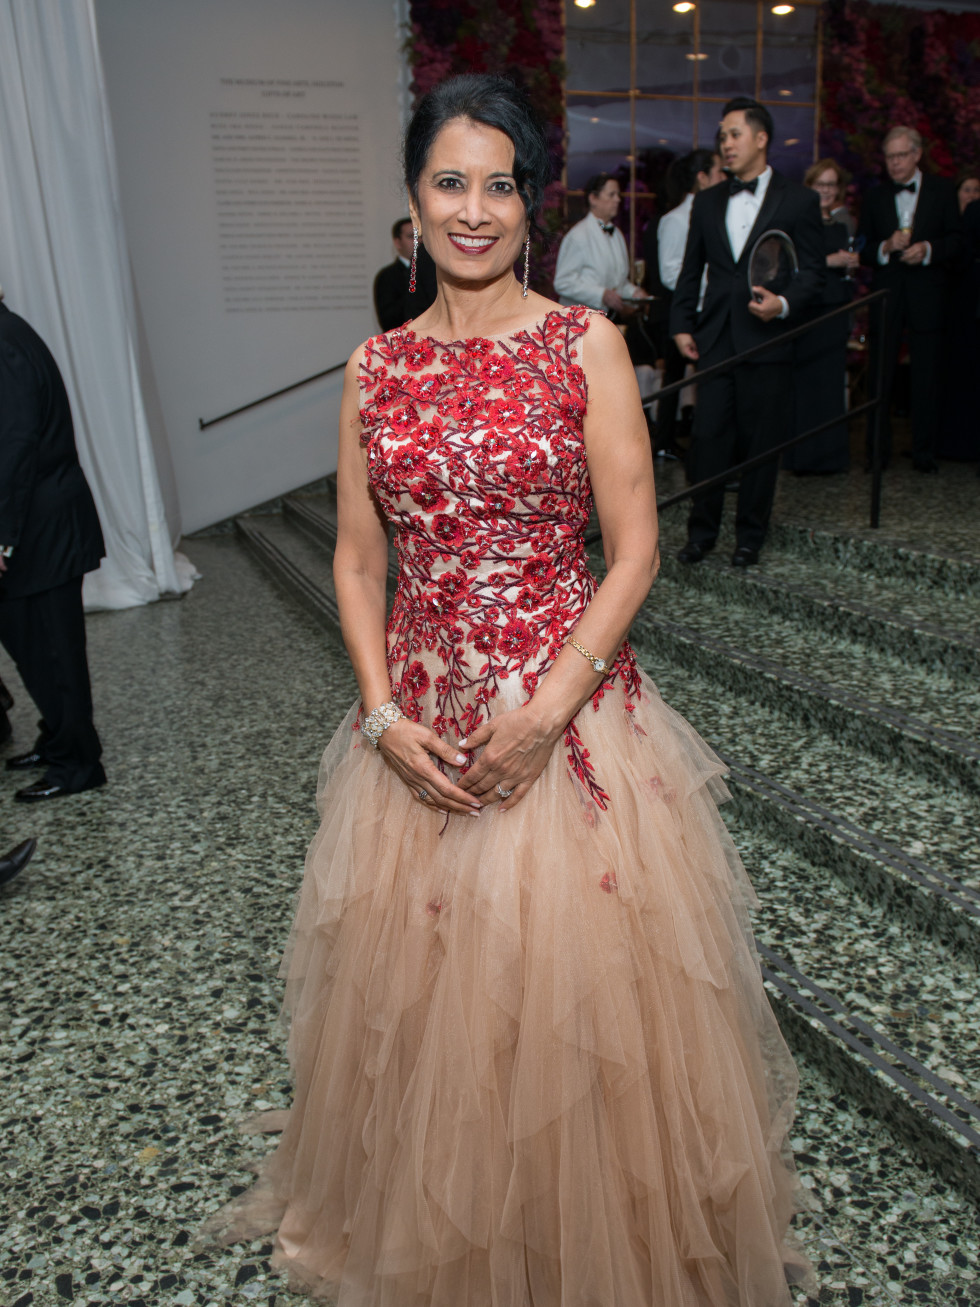 Houston, MFAH Oscar de la Renta Ball, Renu Khator